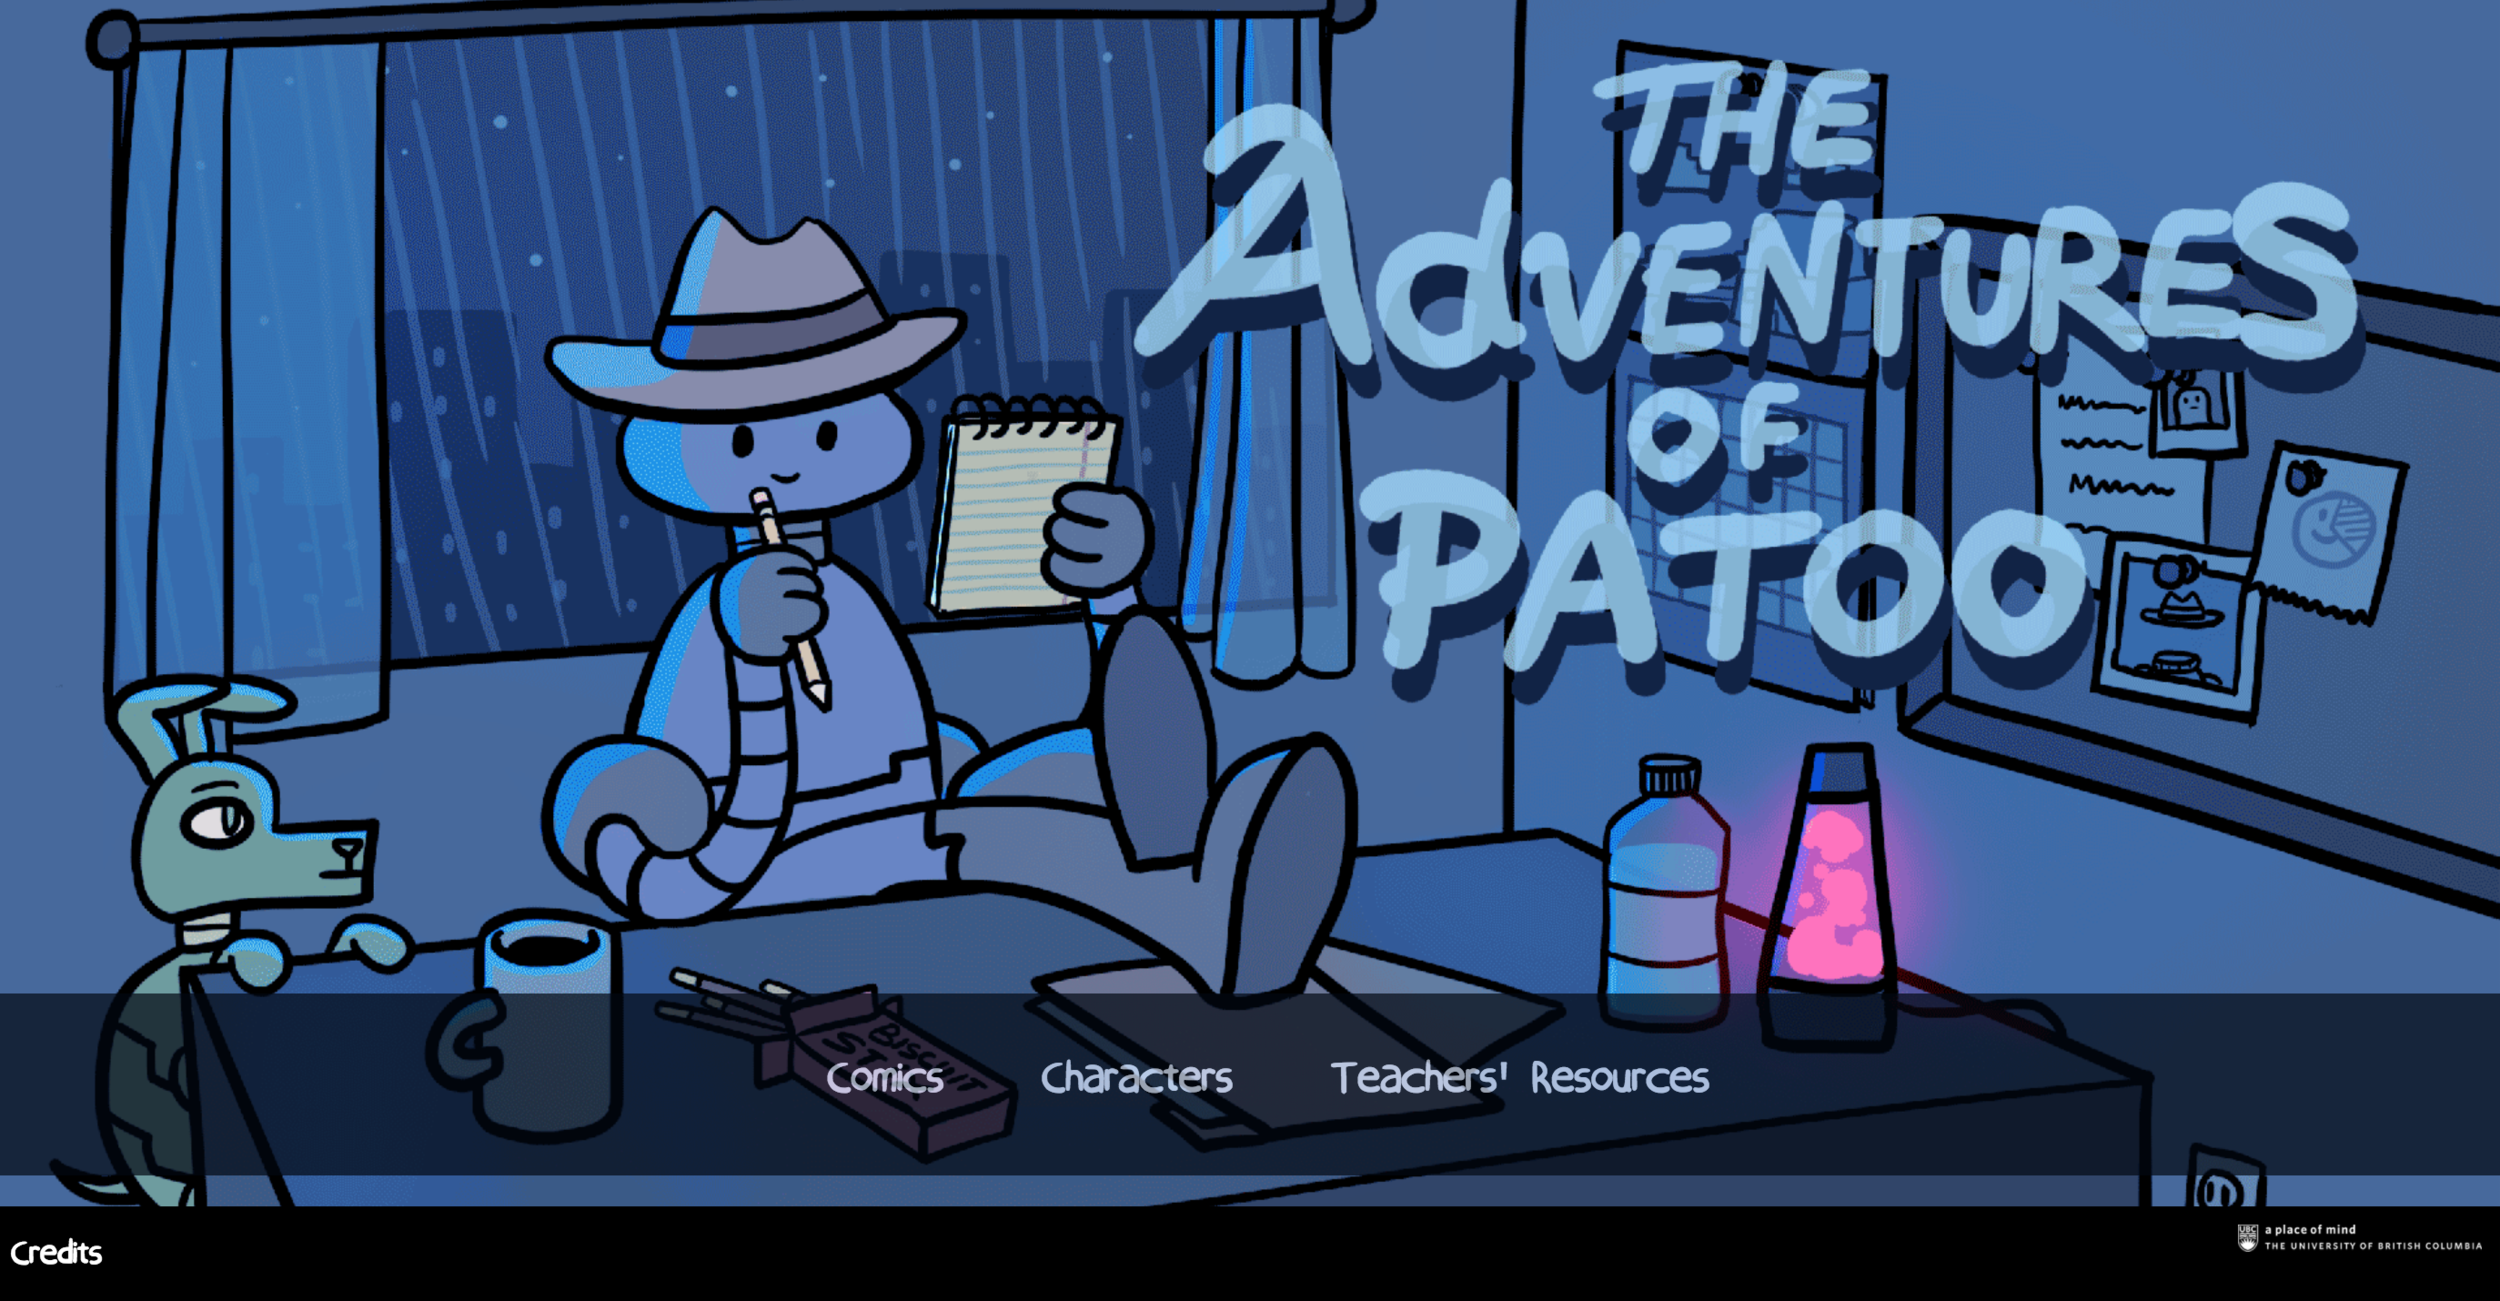 Adventures of Patoo Main Page